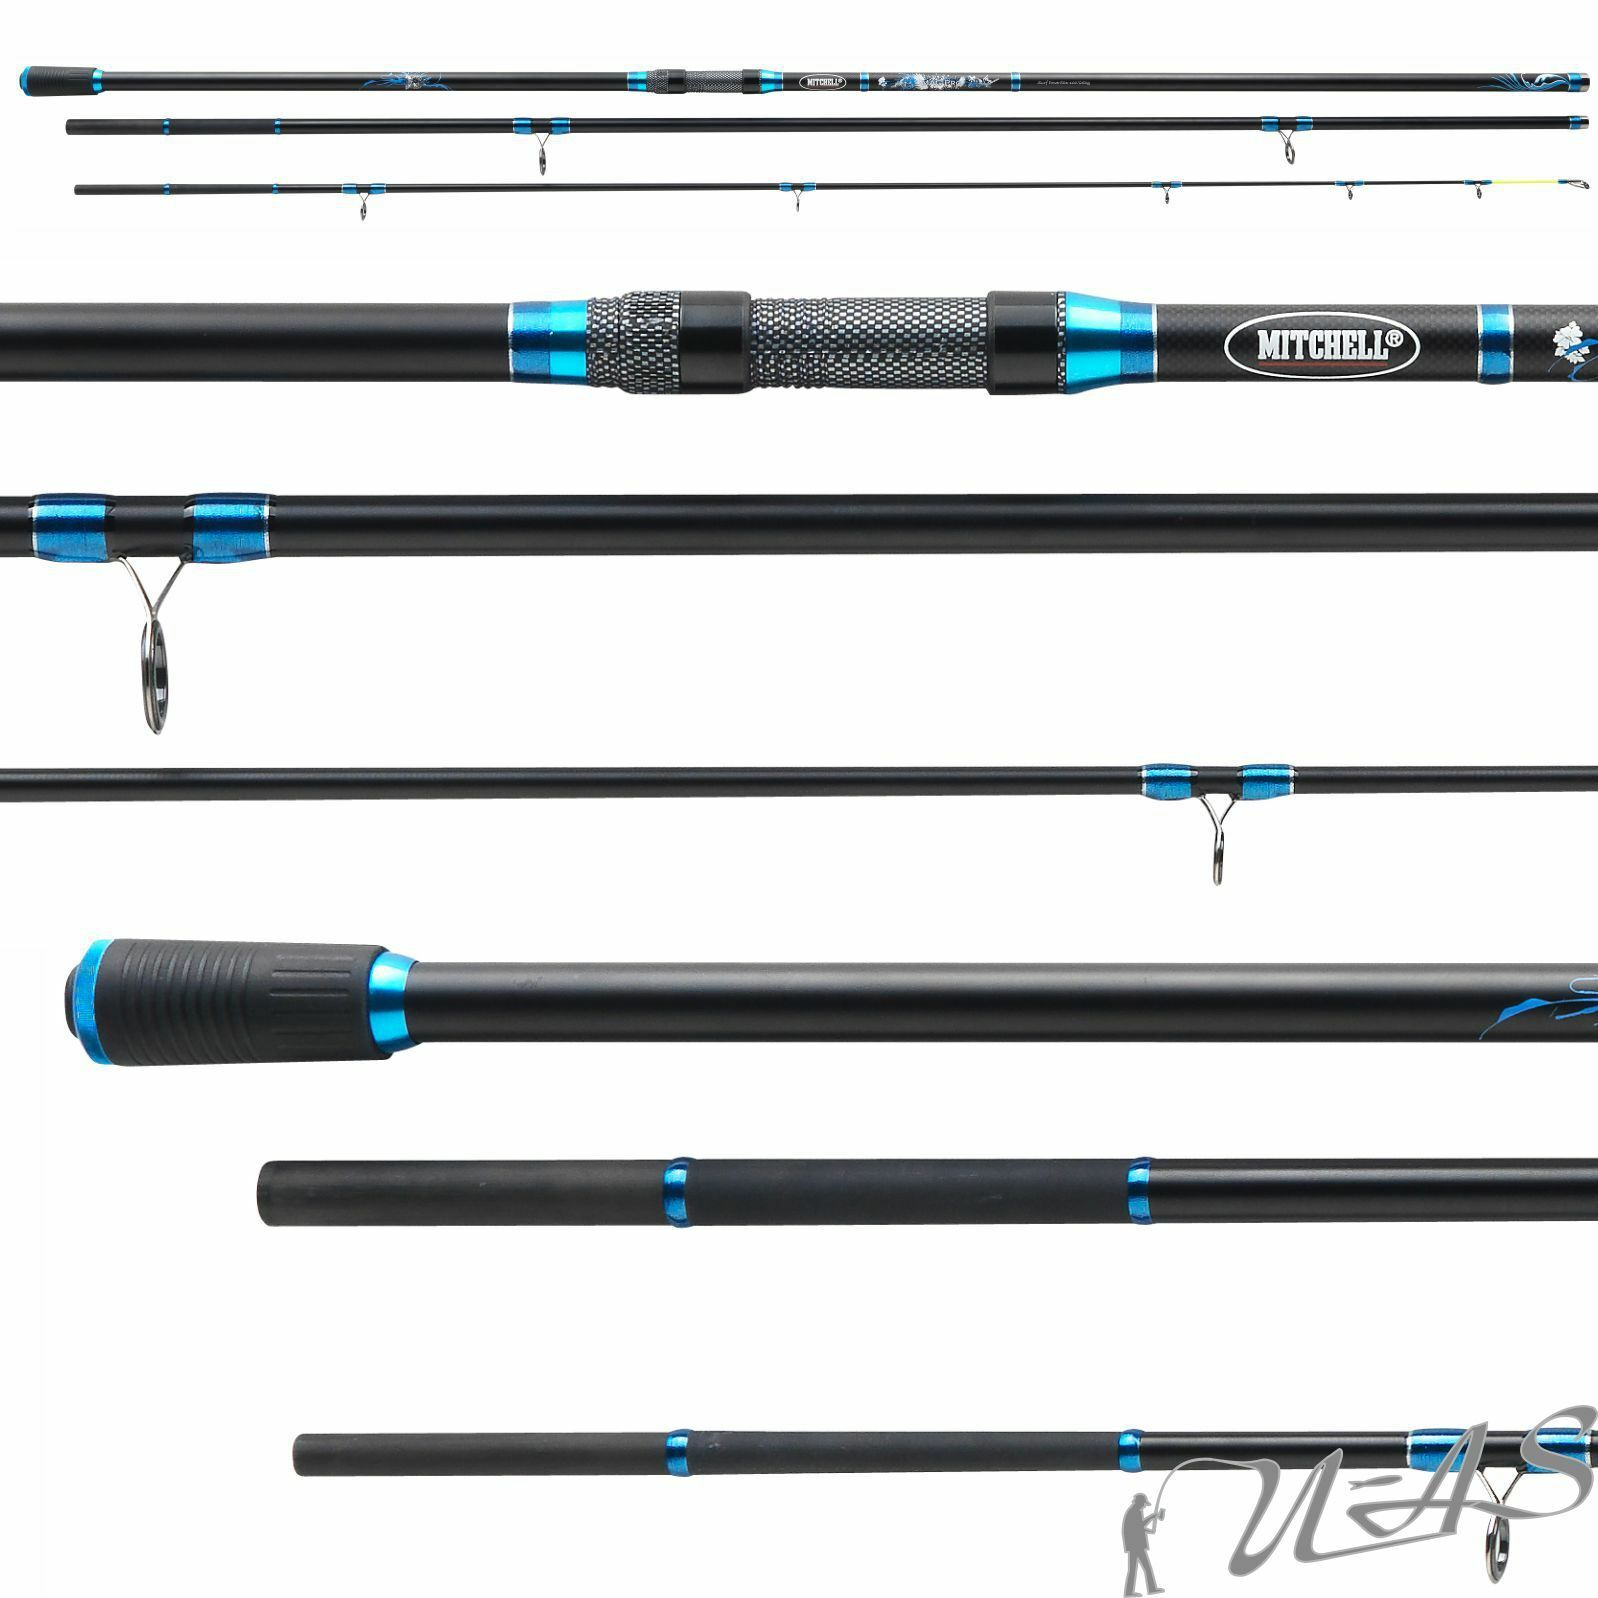 MITCHELL MAG PRO R SURF 4,50m 250g 2430t professionale Carbon Power increspature del mare stadia Ava